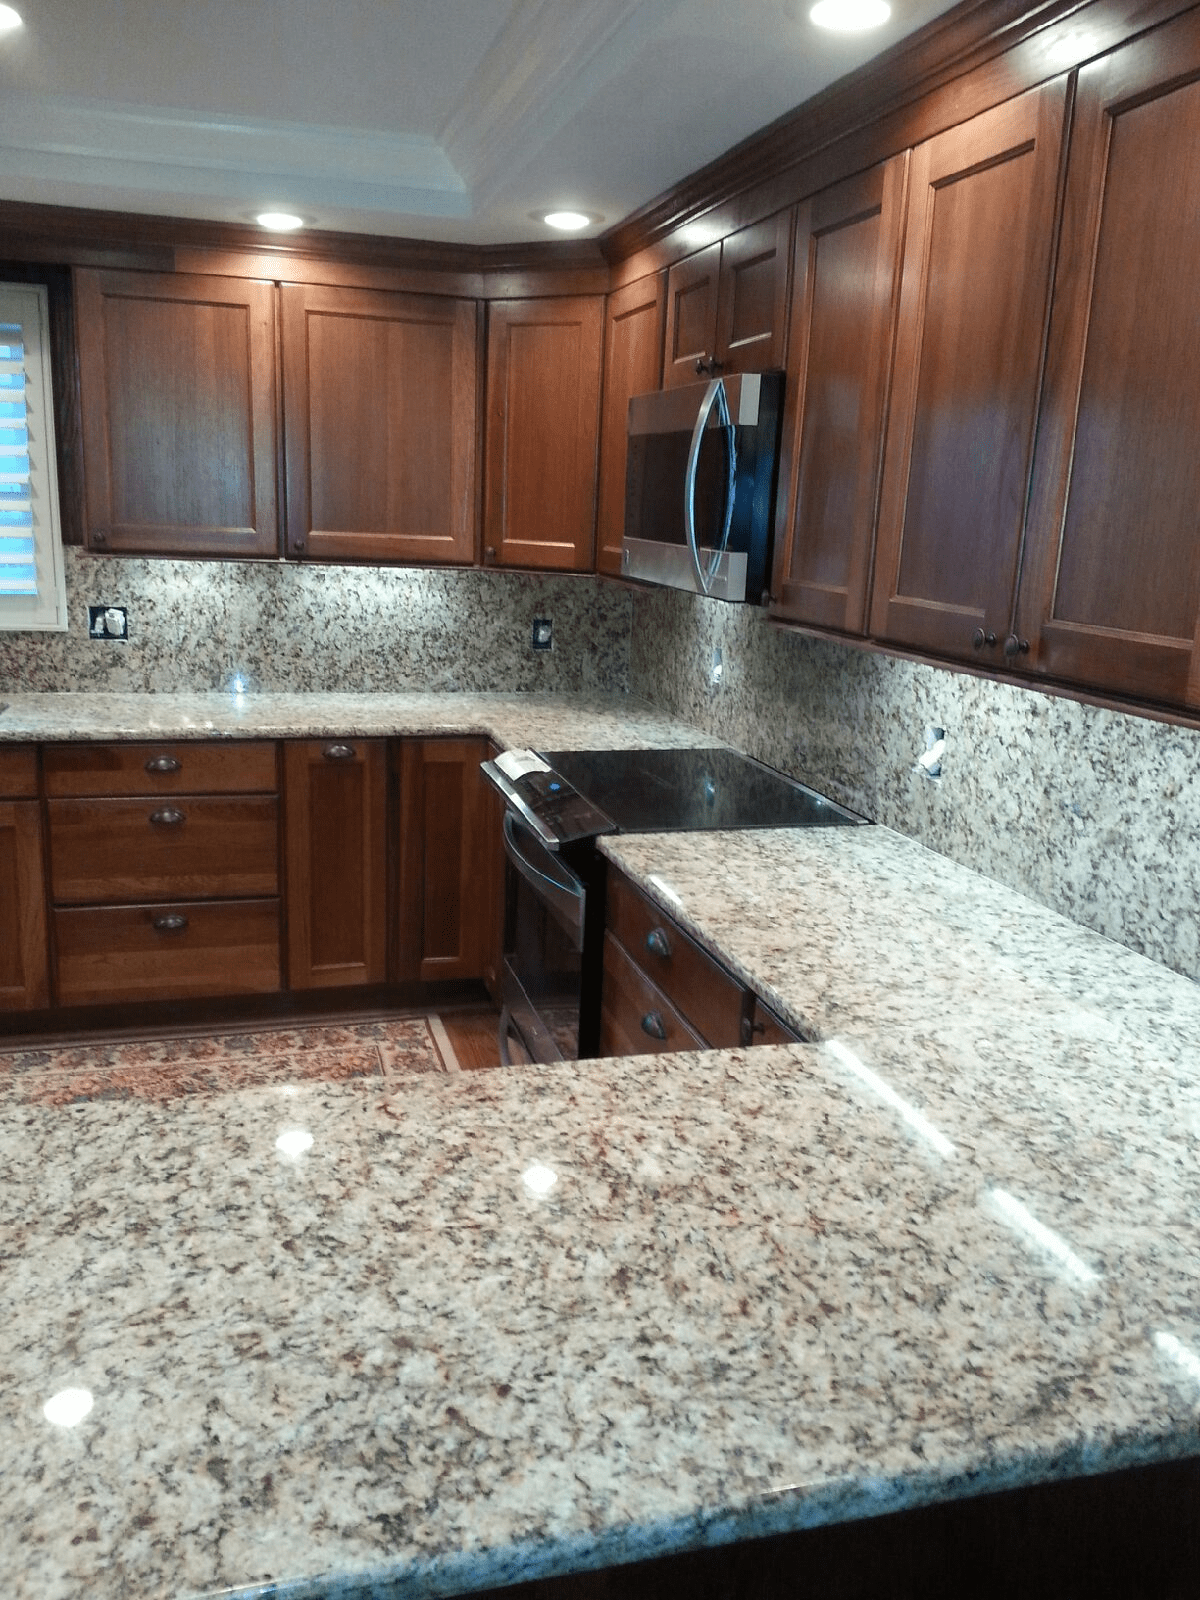 How To Get Stains Off Marble Countertop Granite Counter Tops Can Look Sharp But How Do You